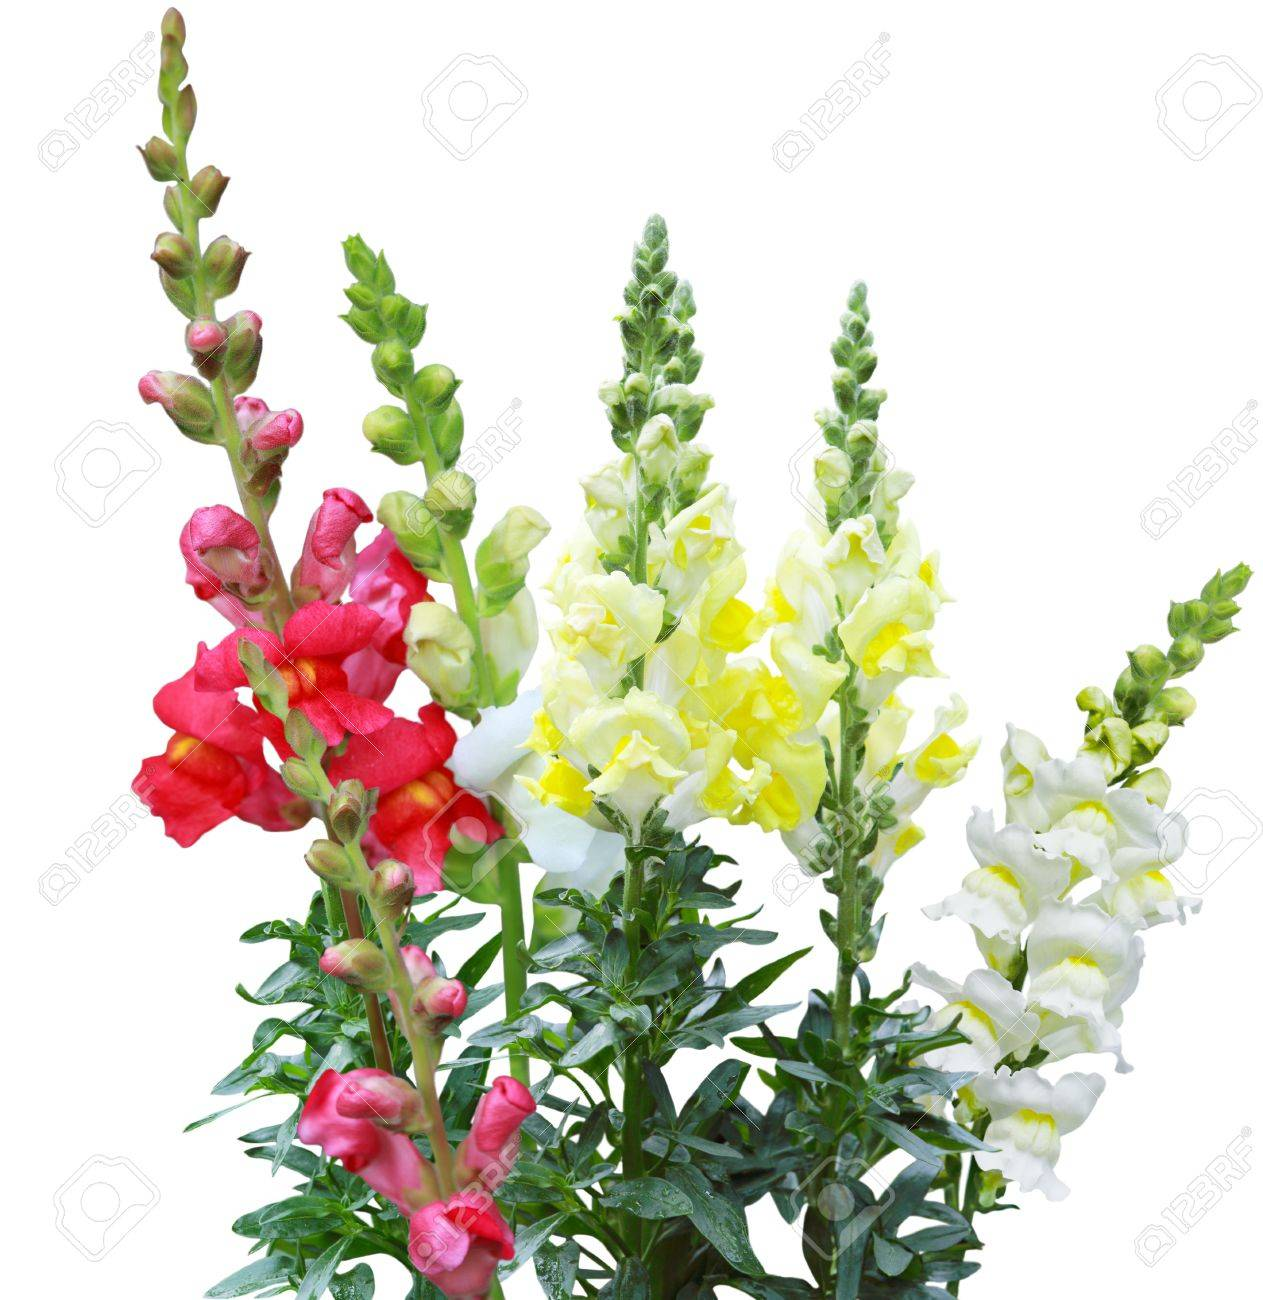 Antirrhinum majus snapdragon flowers come in shades of yellow antirrhinum majus snapdragon flowers come in shades of yellow white pink red stock mightylinksfo